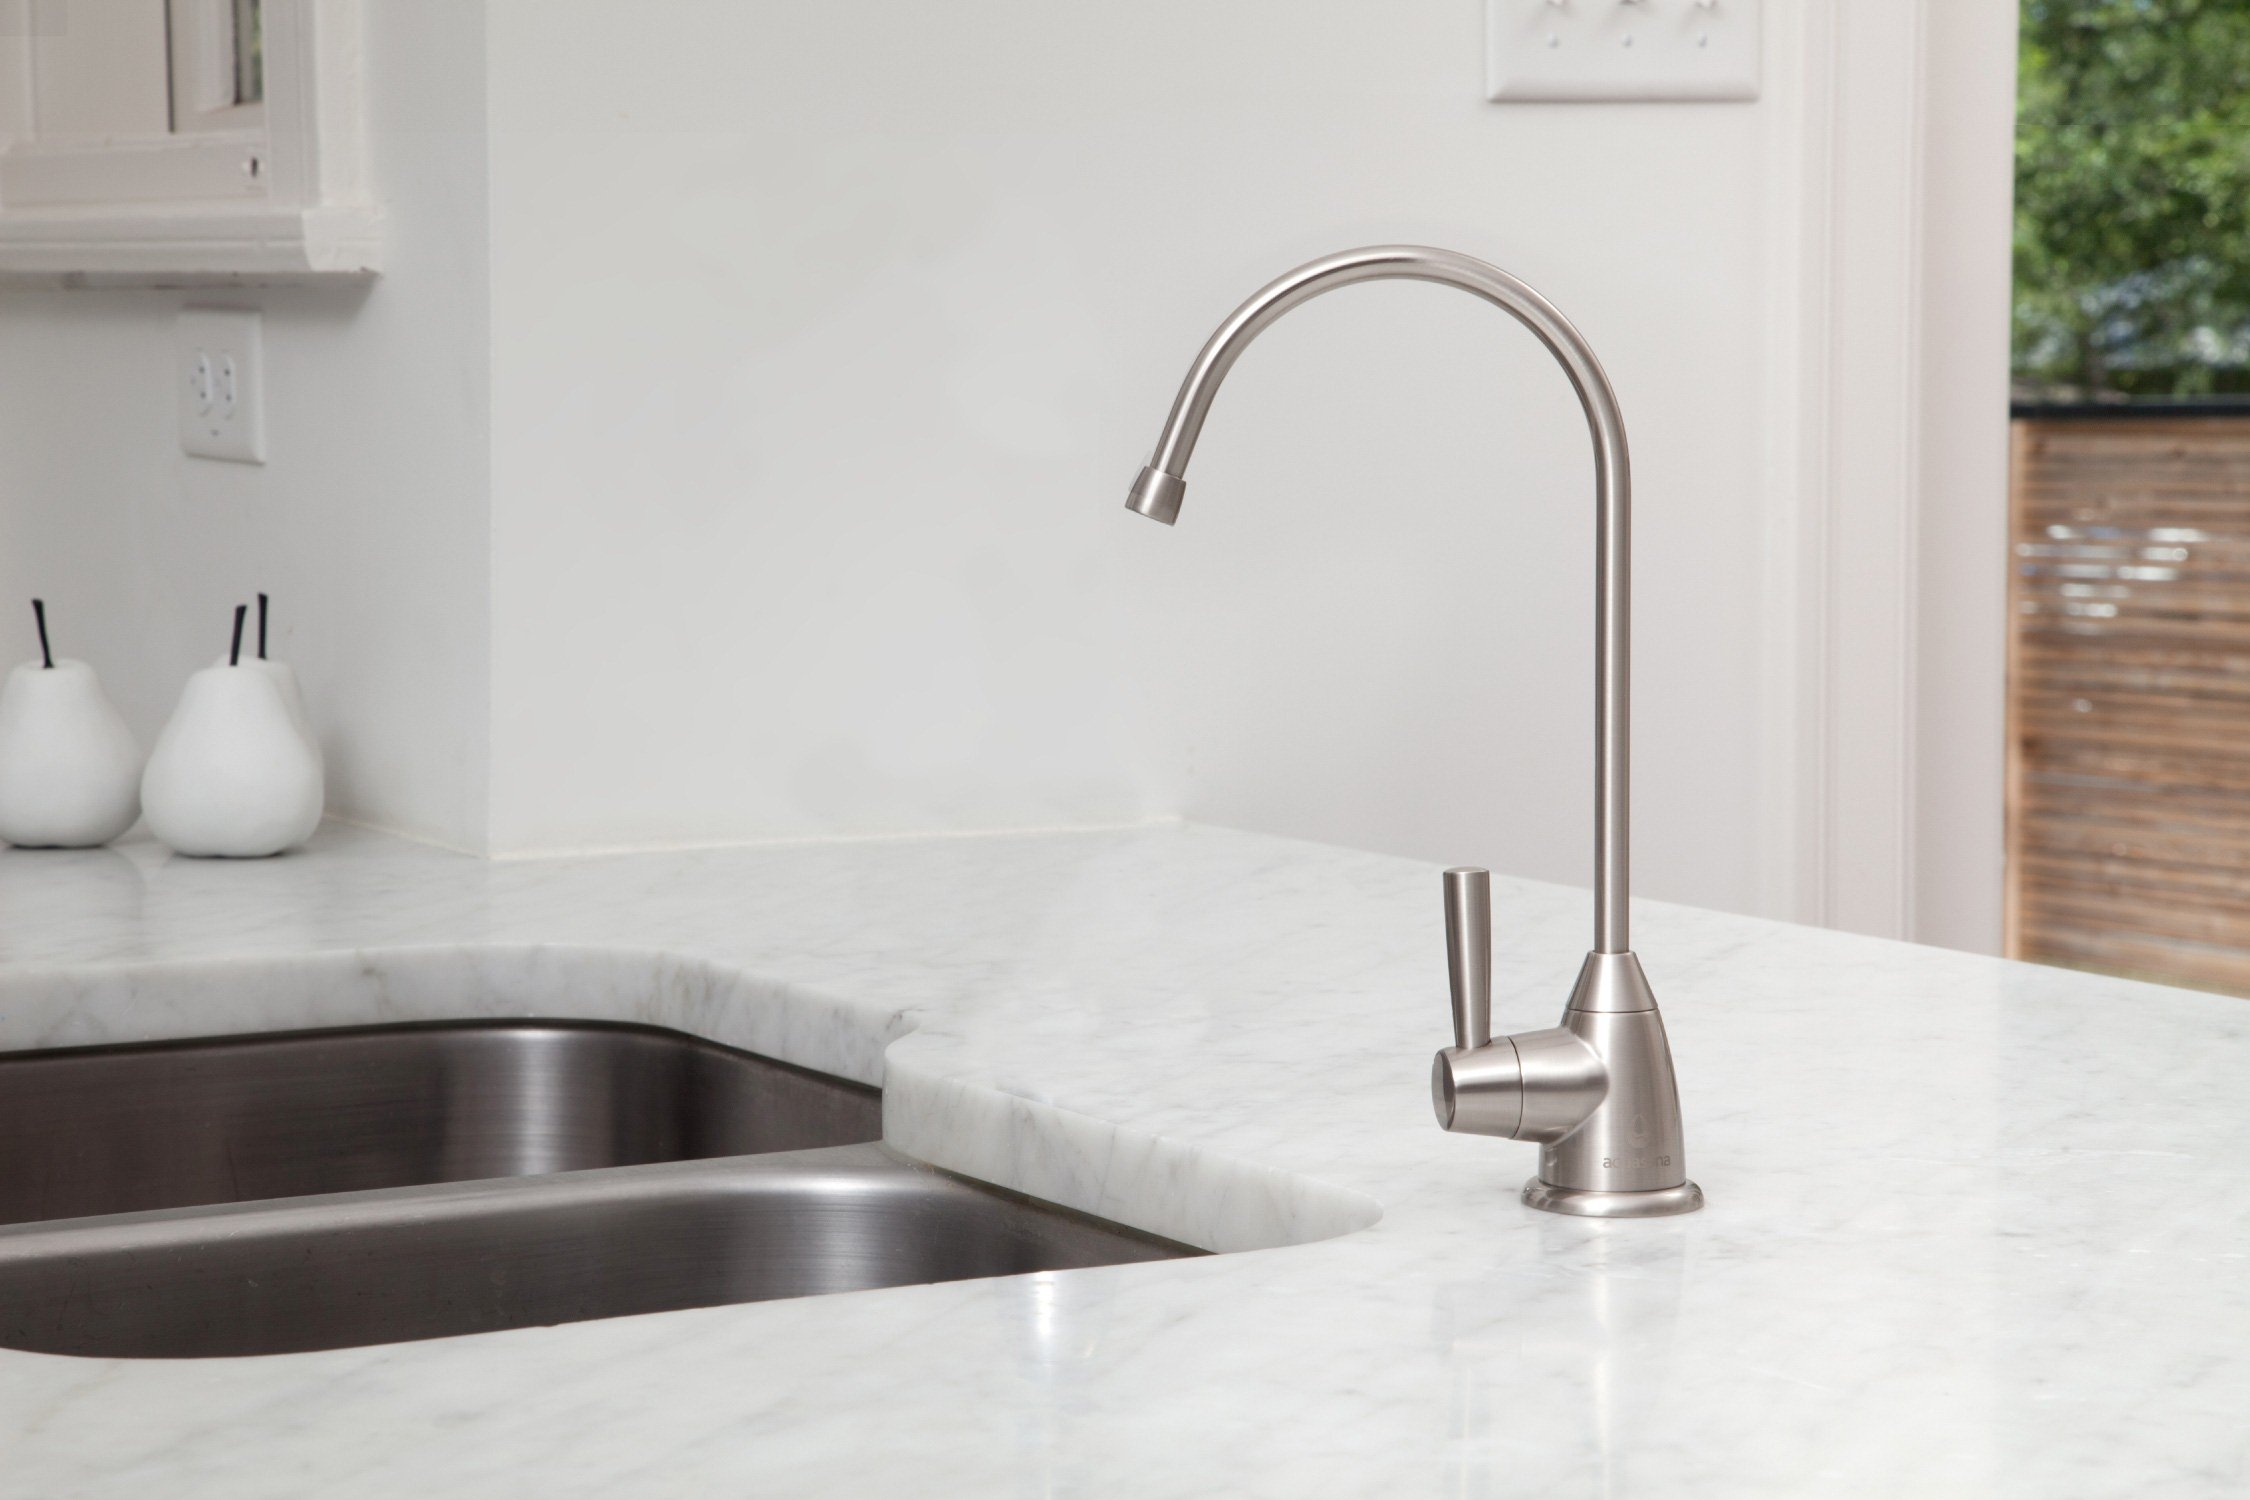 ... Aquasana Aq 4601 55 Premium Under Counter Water Filter · European  Kitchen Sink Faucet ...